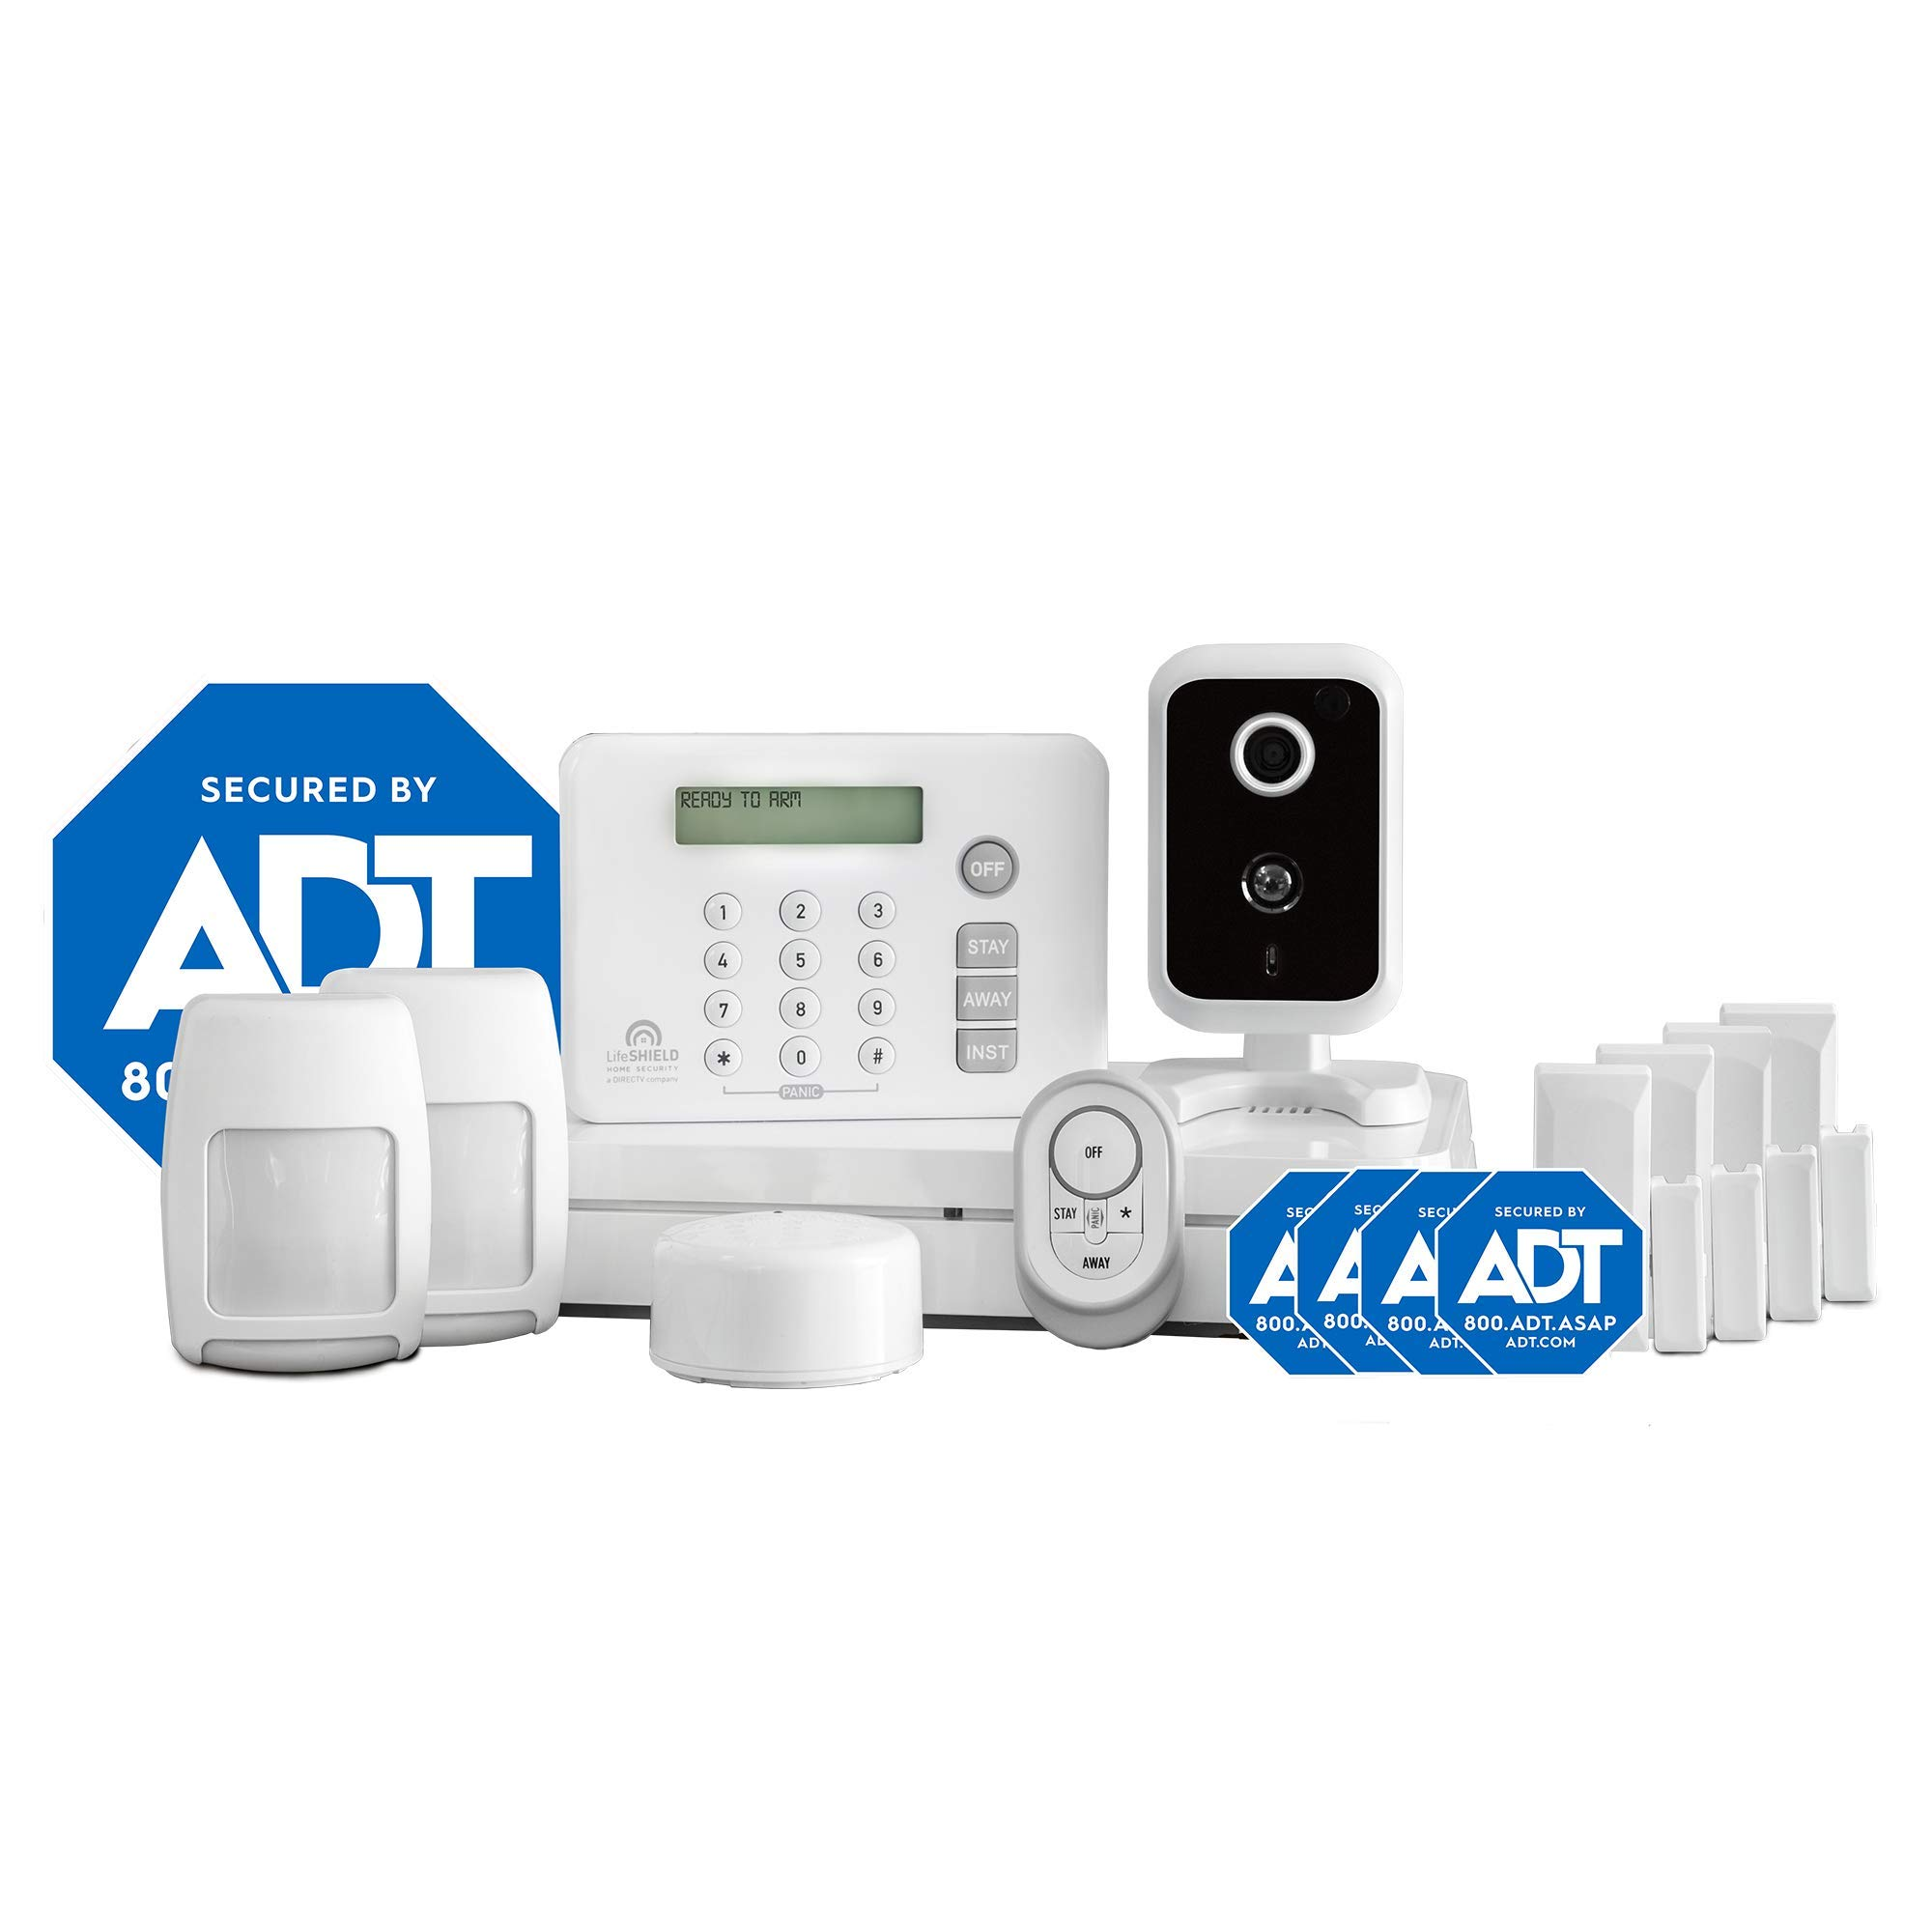 LifeShield, an ADT Company - 13-Piece Easy, DIY Smart Home Security System - Optional 24/7 Monitoring - Smart Camera - No Contract - Wi-Fi Enabled - Alexa Compatible by LifeShield